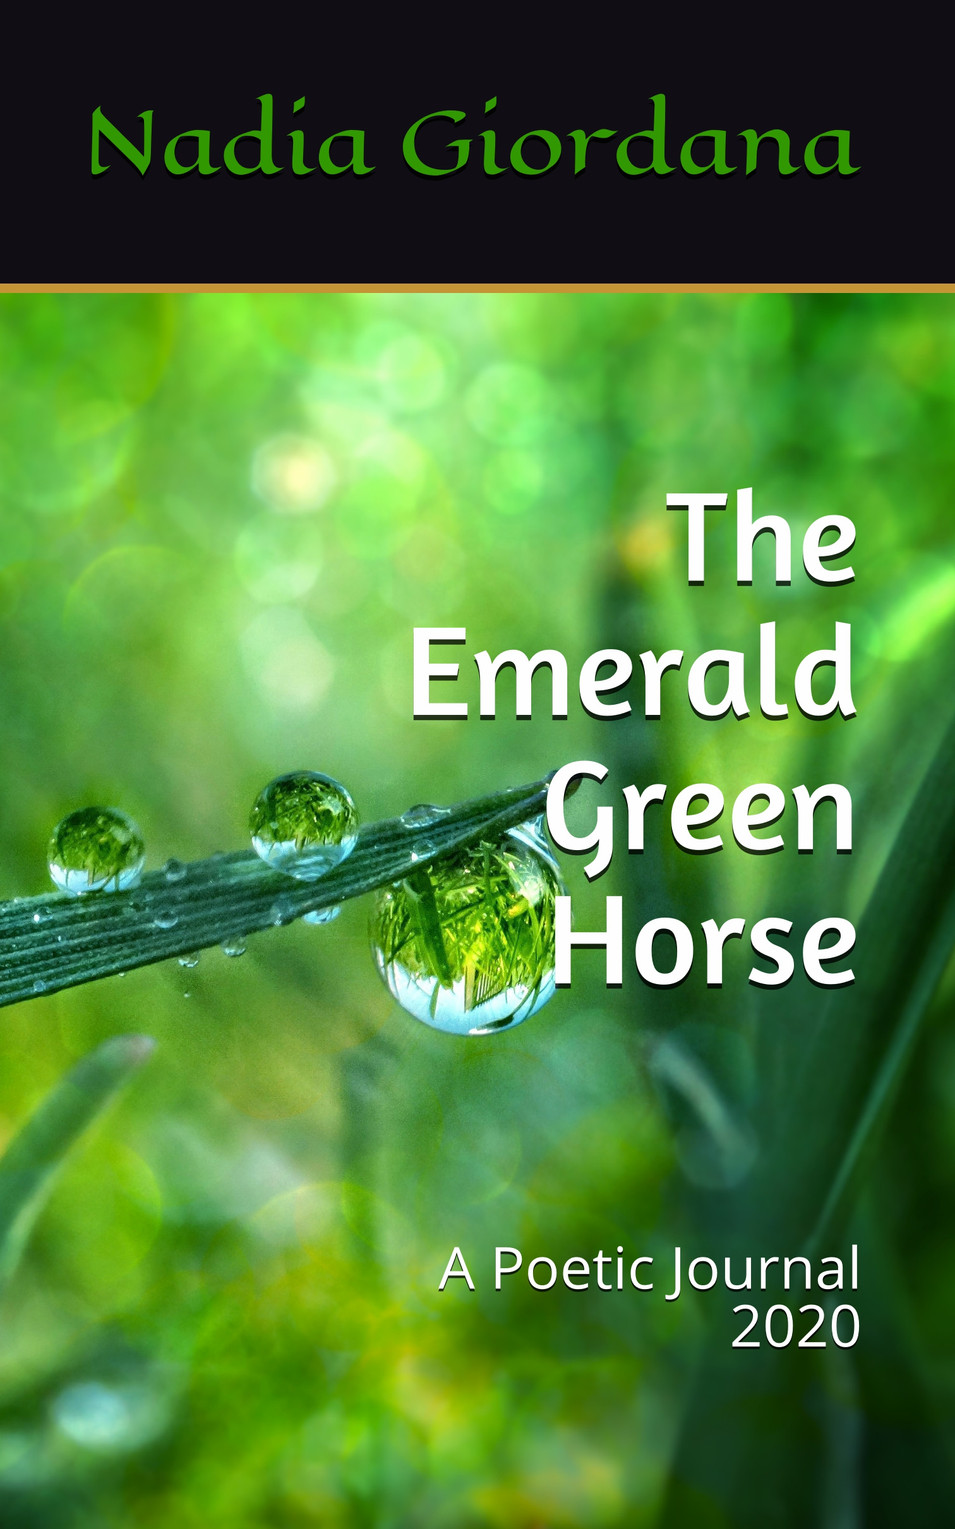 The Emerald Green Horse